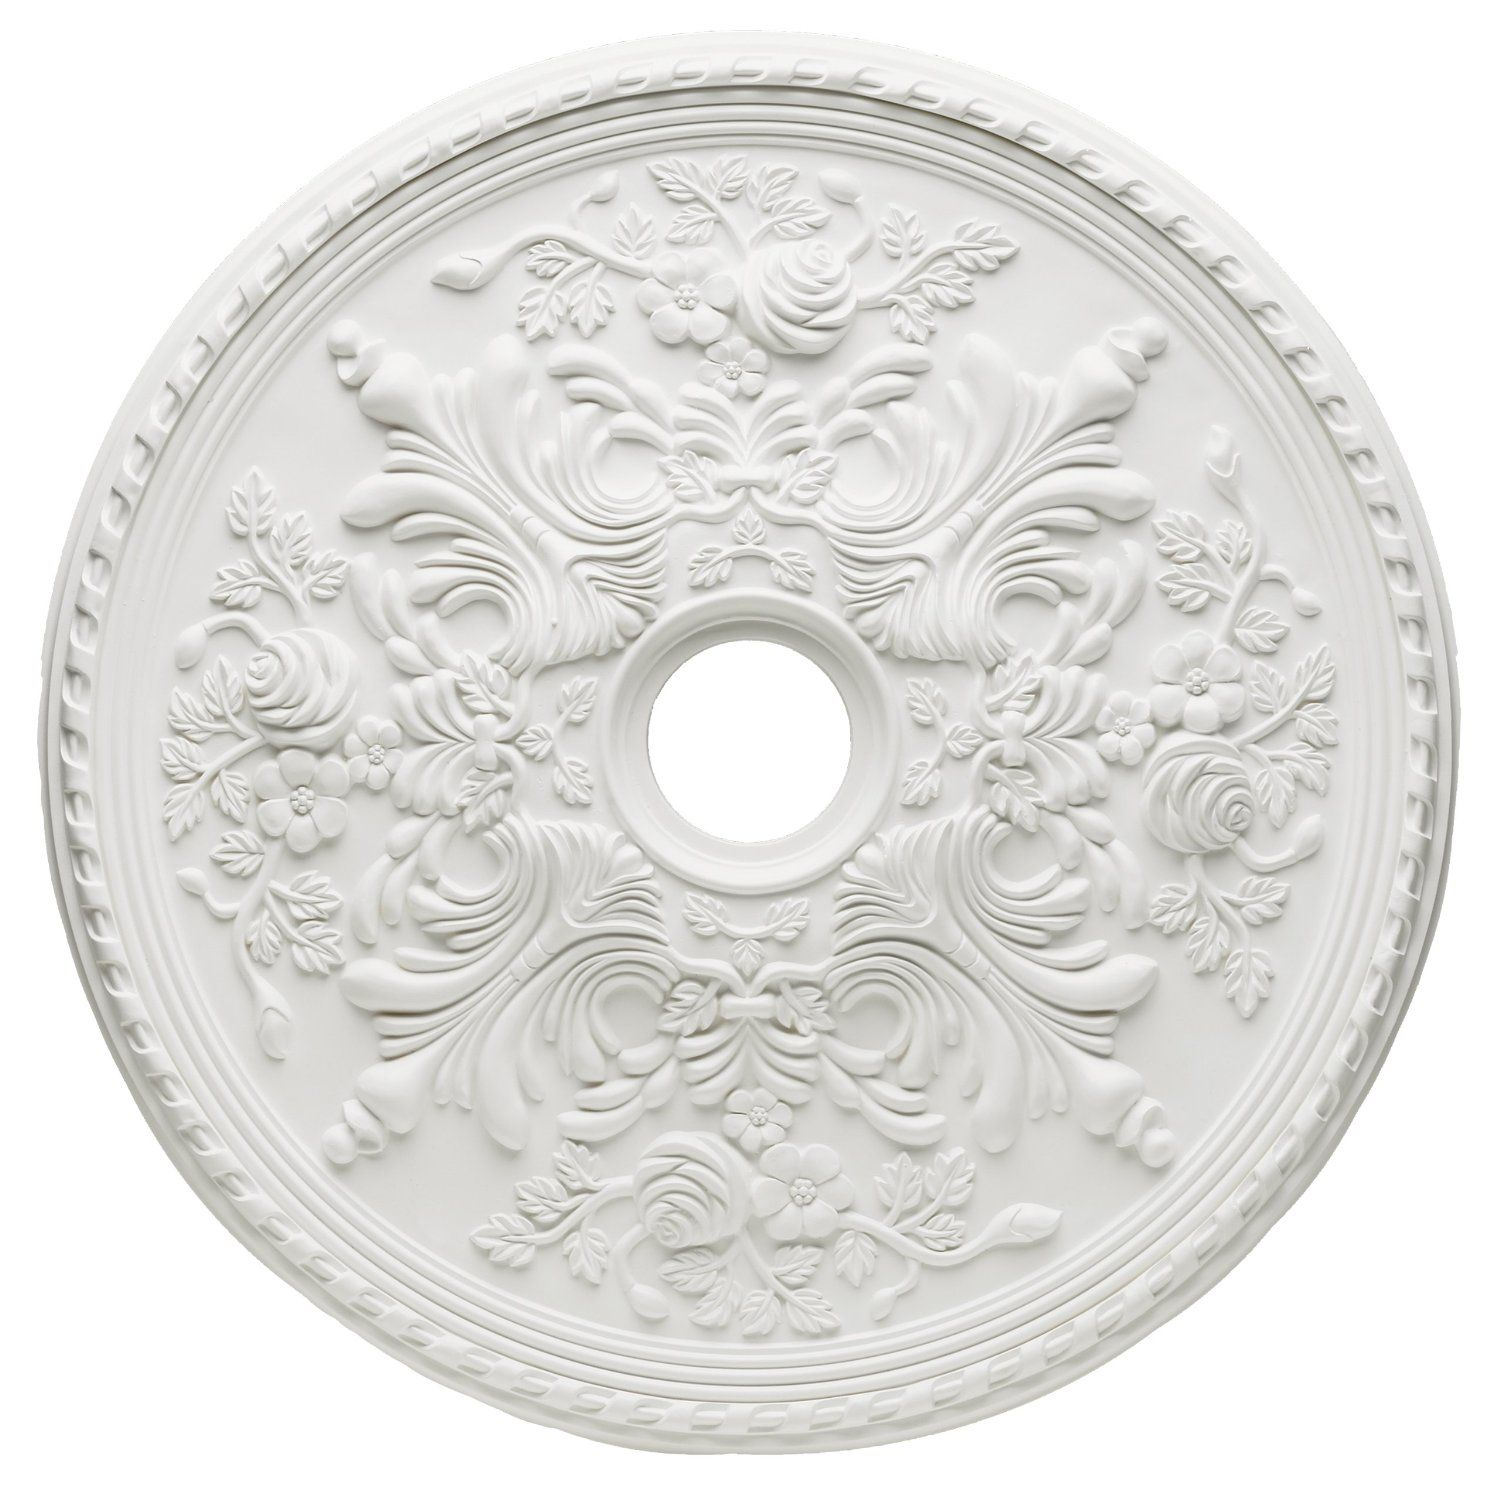 Ceiling tile fan d3cor google search things for my walls westinghouse lighting 7775400 cape may polyurethane ceiling medallion diameter dailygadgetfo Image collections